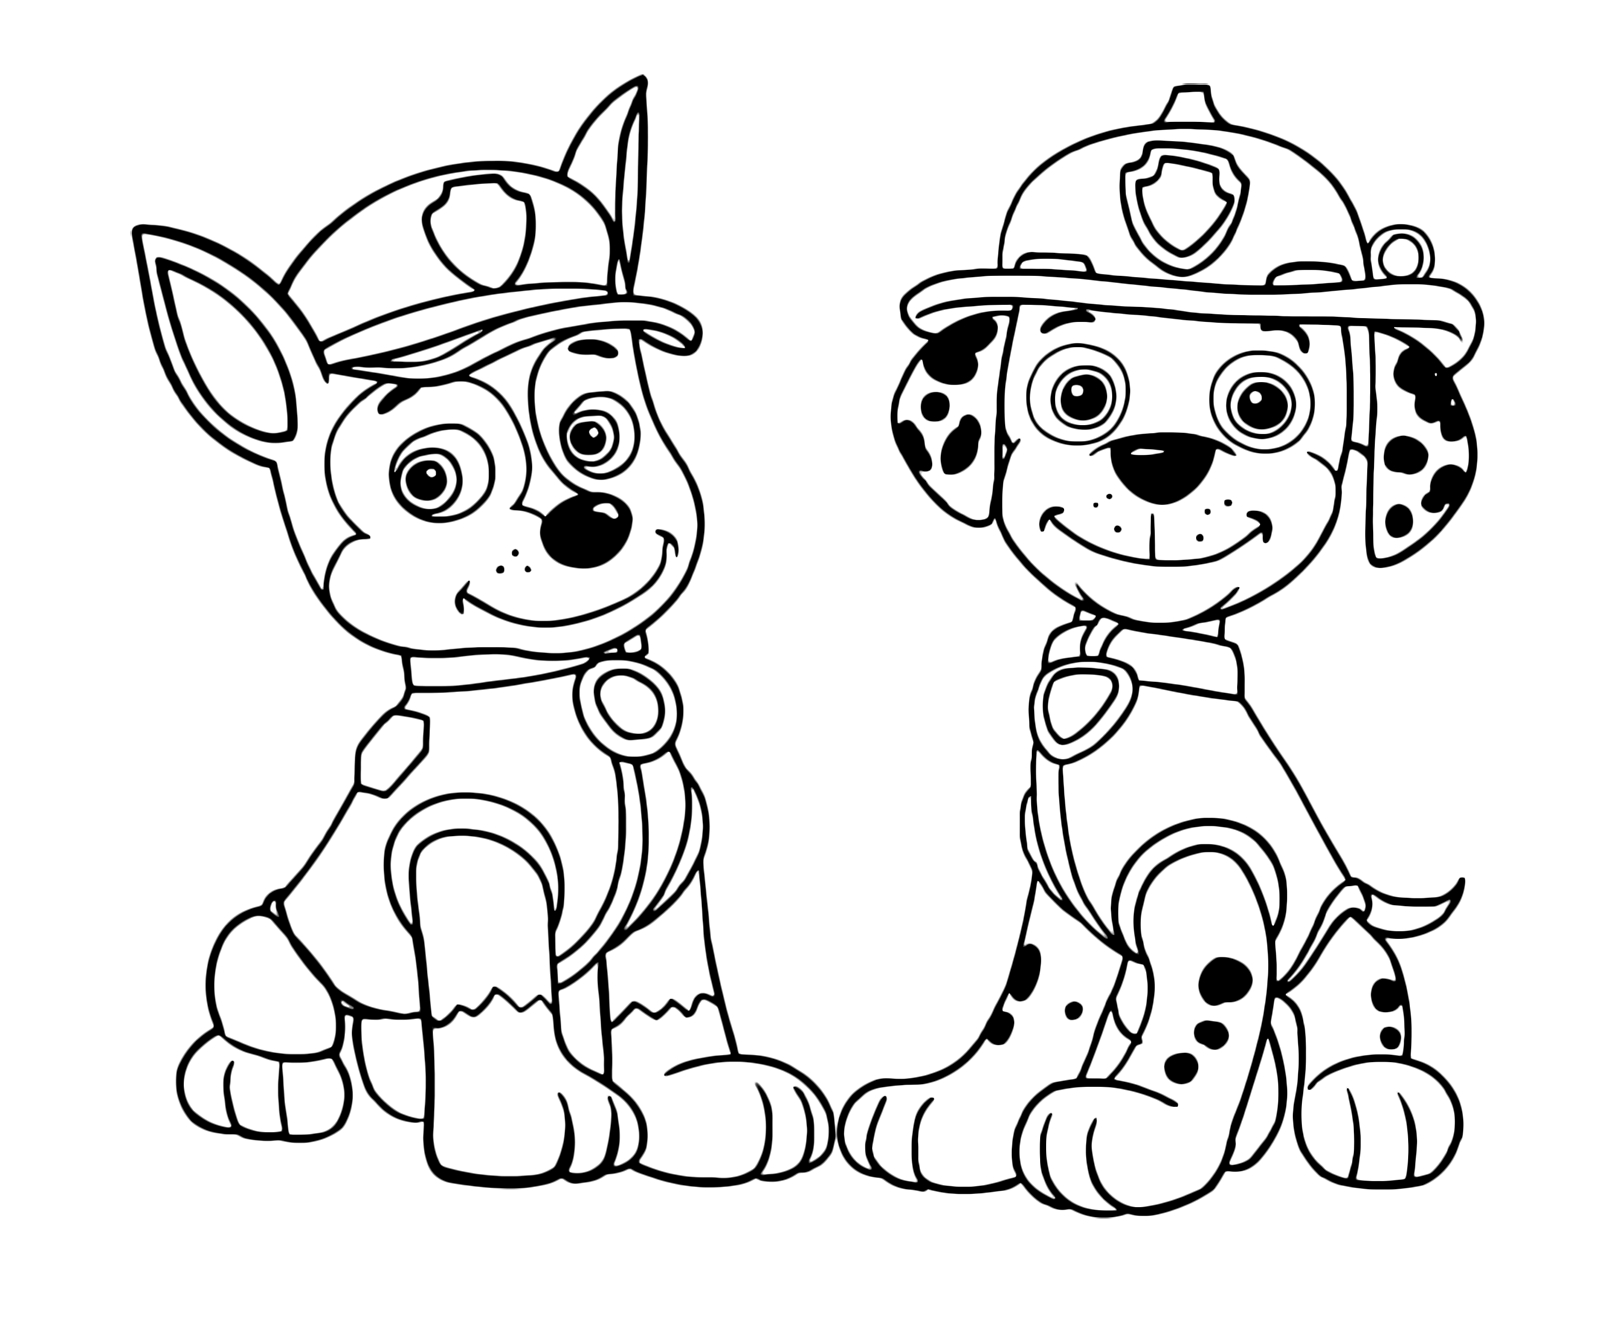 Chase paw patrol coloring pages to print ~ 25+ Excellent Picture of Chase Paw Patrol Coloring Page ...